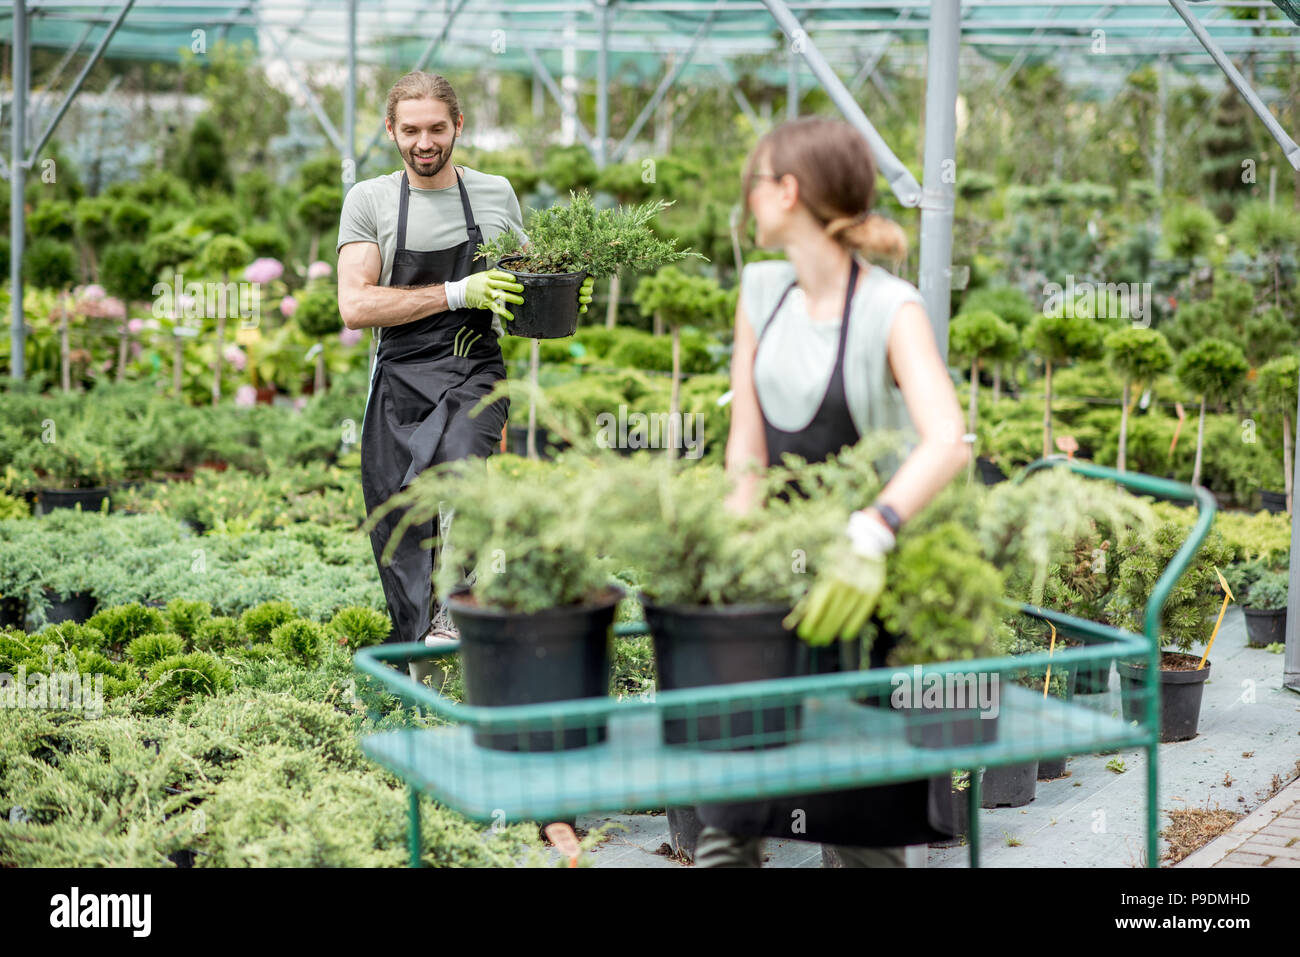 Workers putting plants on the cart - Stock Image